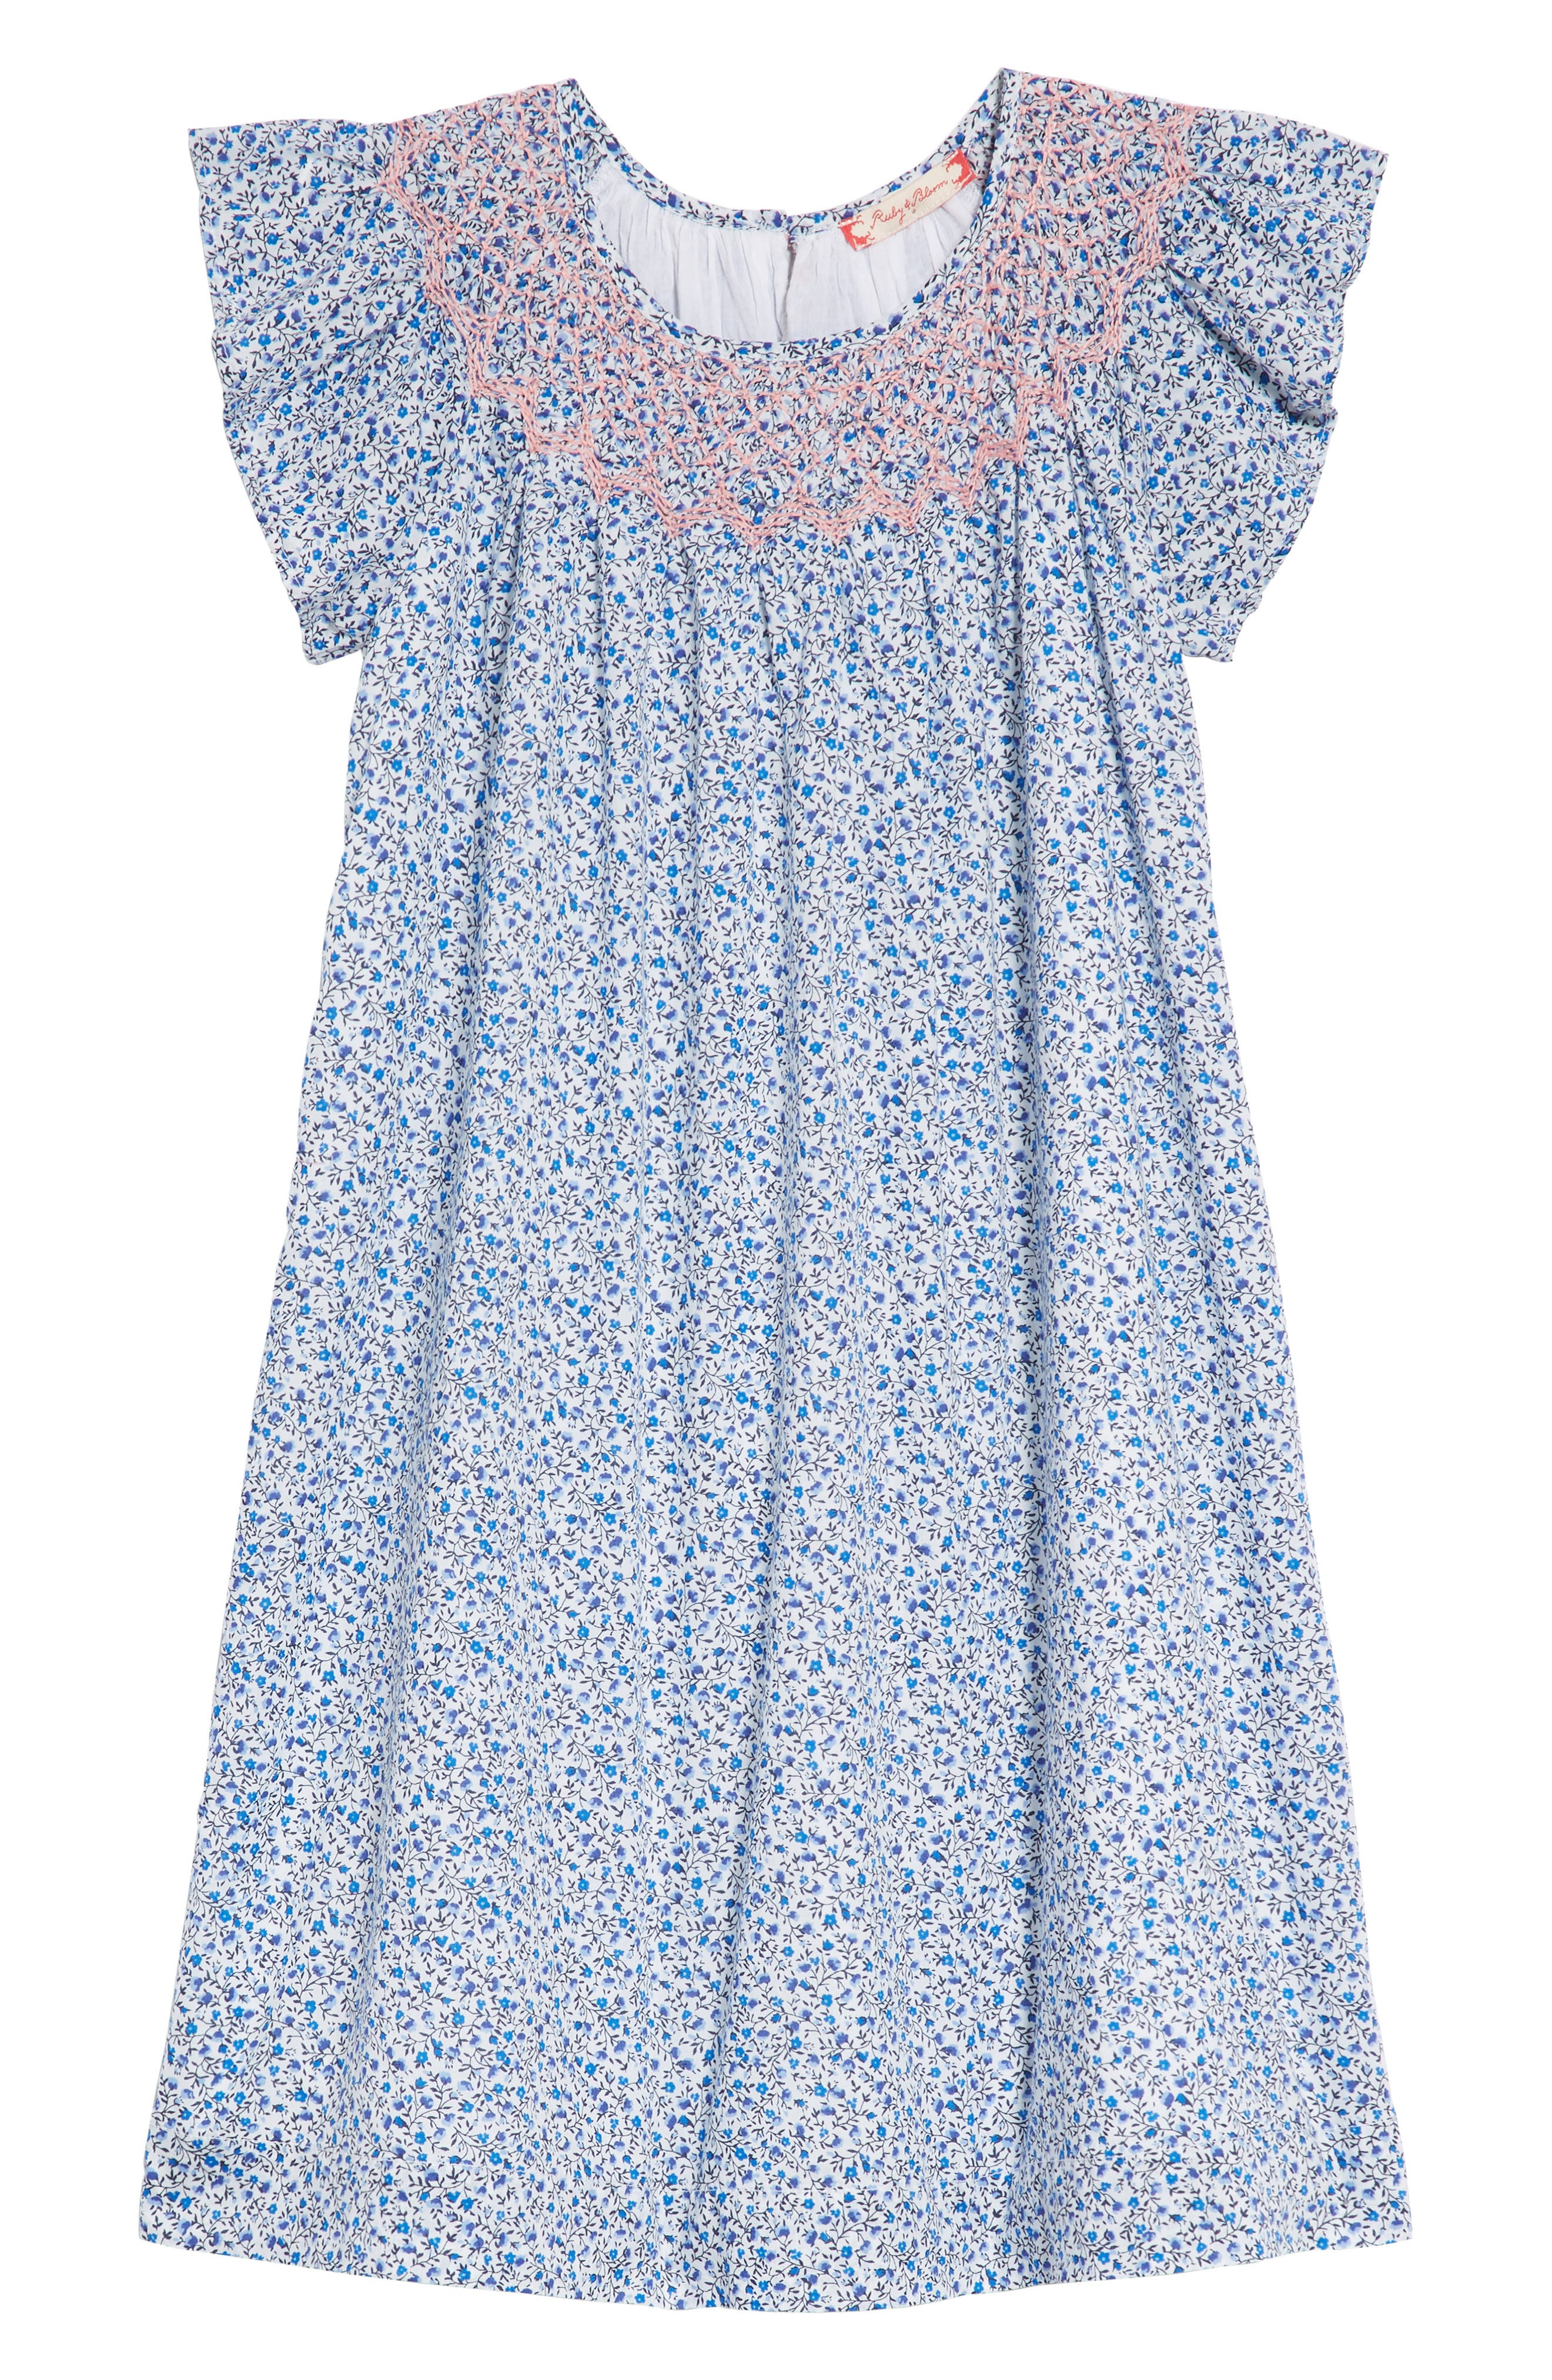 Smocked Ditzy Dress,                         Main,                         color, White- Blue Ditsy